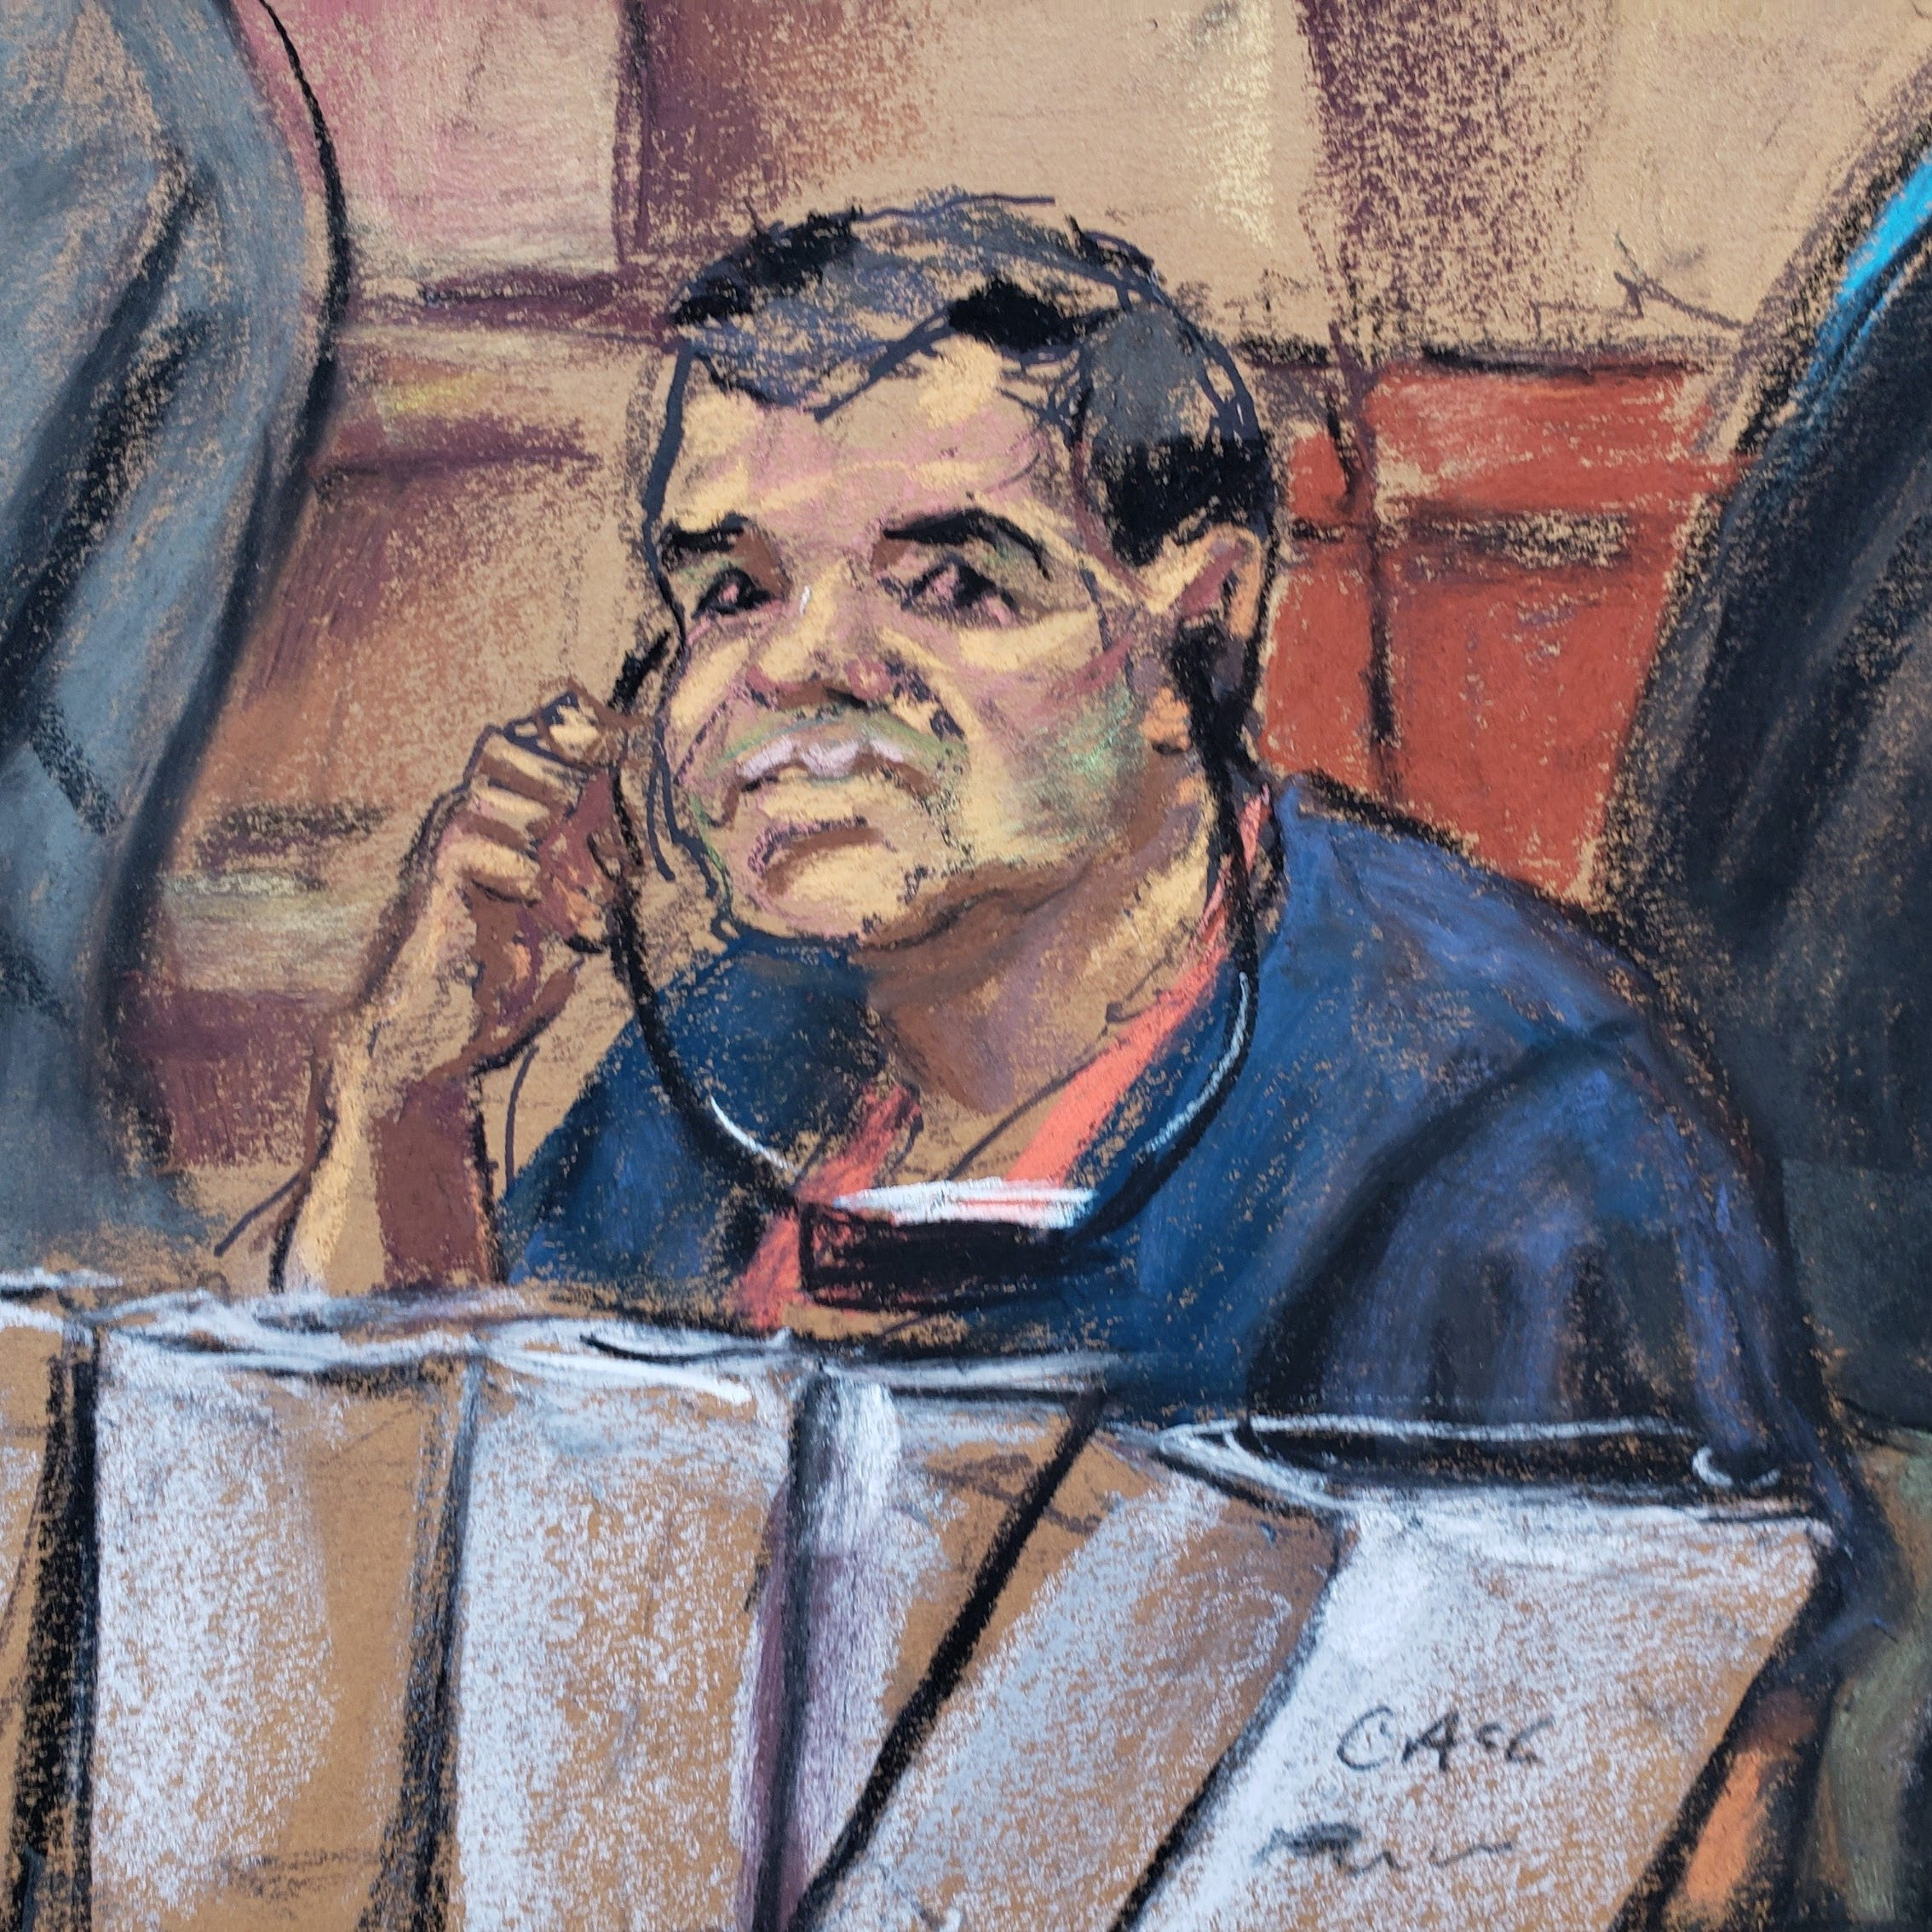 Joaquin El Chapo Guzmán trial: Prosecutors want allegations against Peña Nieto thrown out